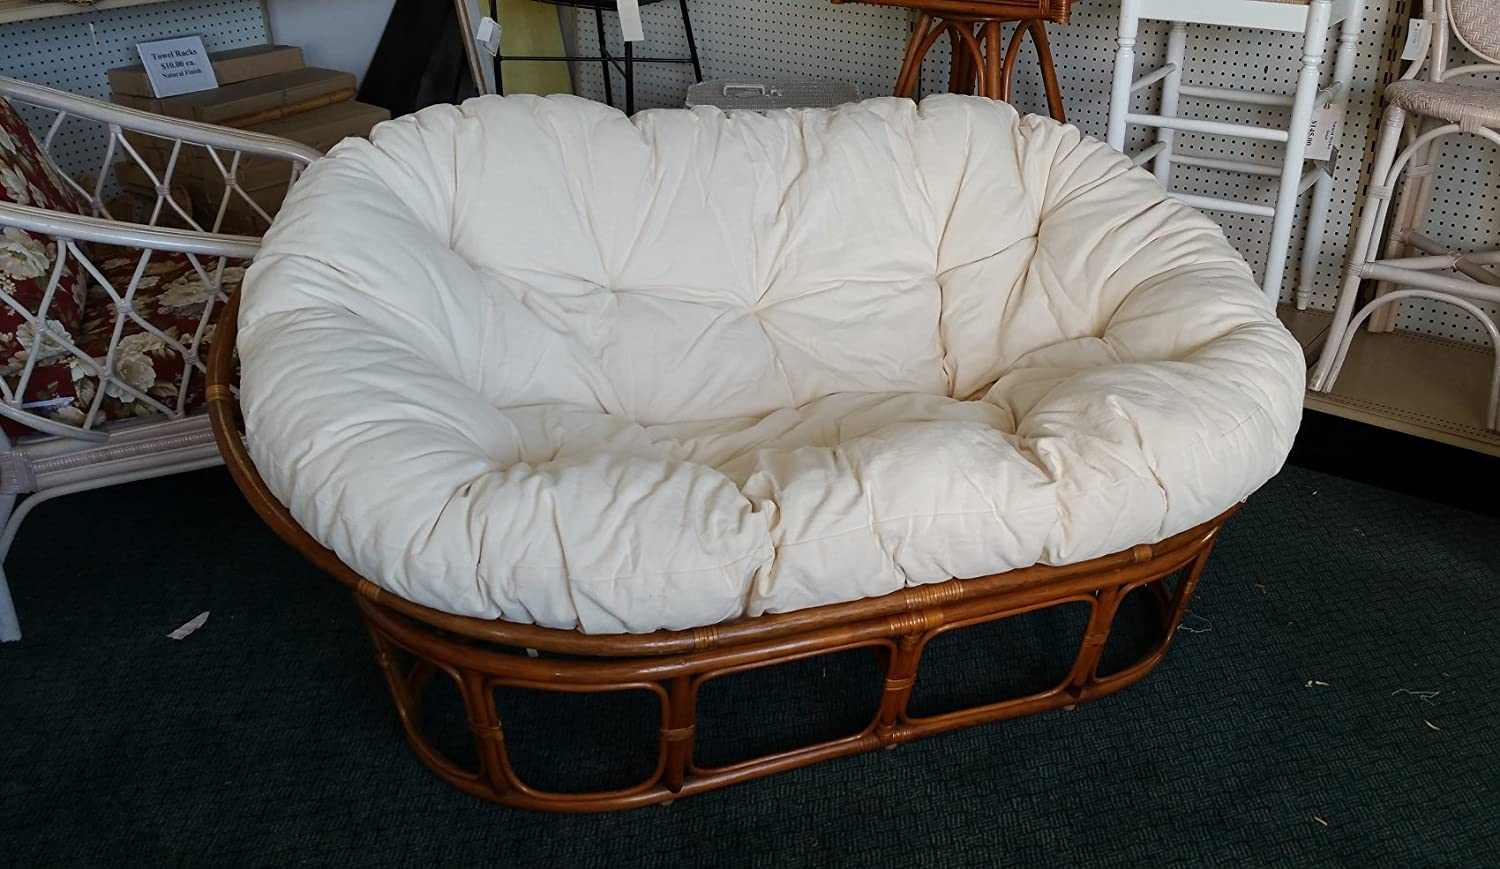 Papasan Loveseat - Classic Indoor Rattan Furniture NIB (Pecan-Natural)